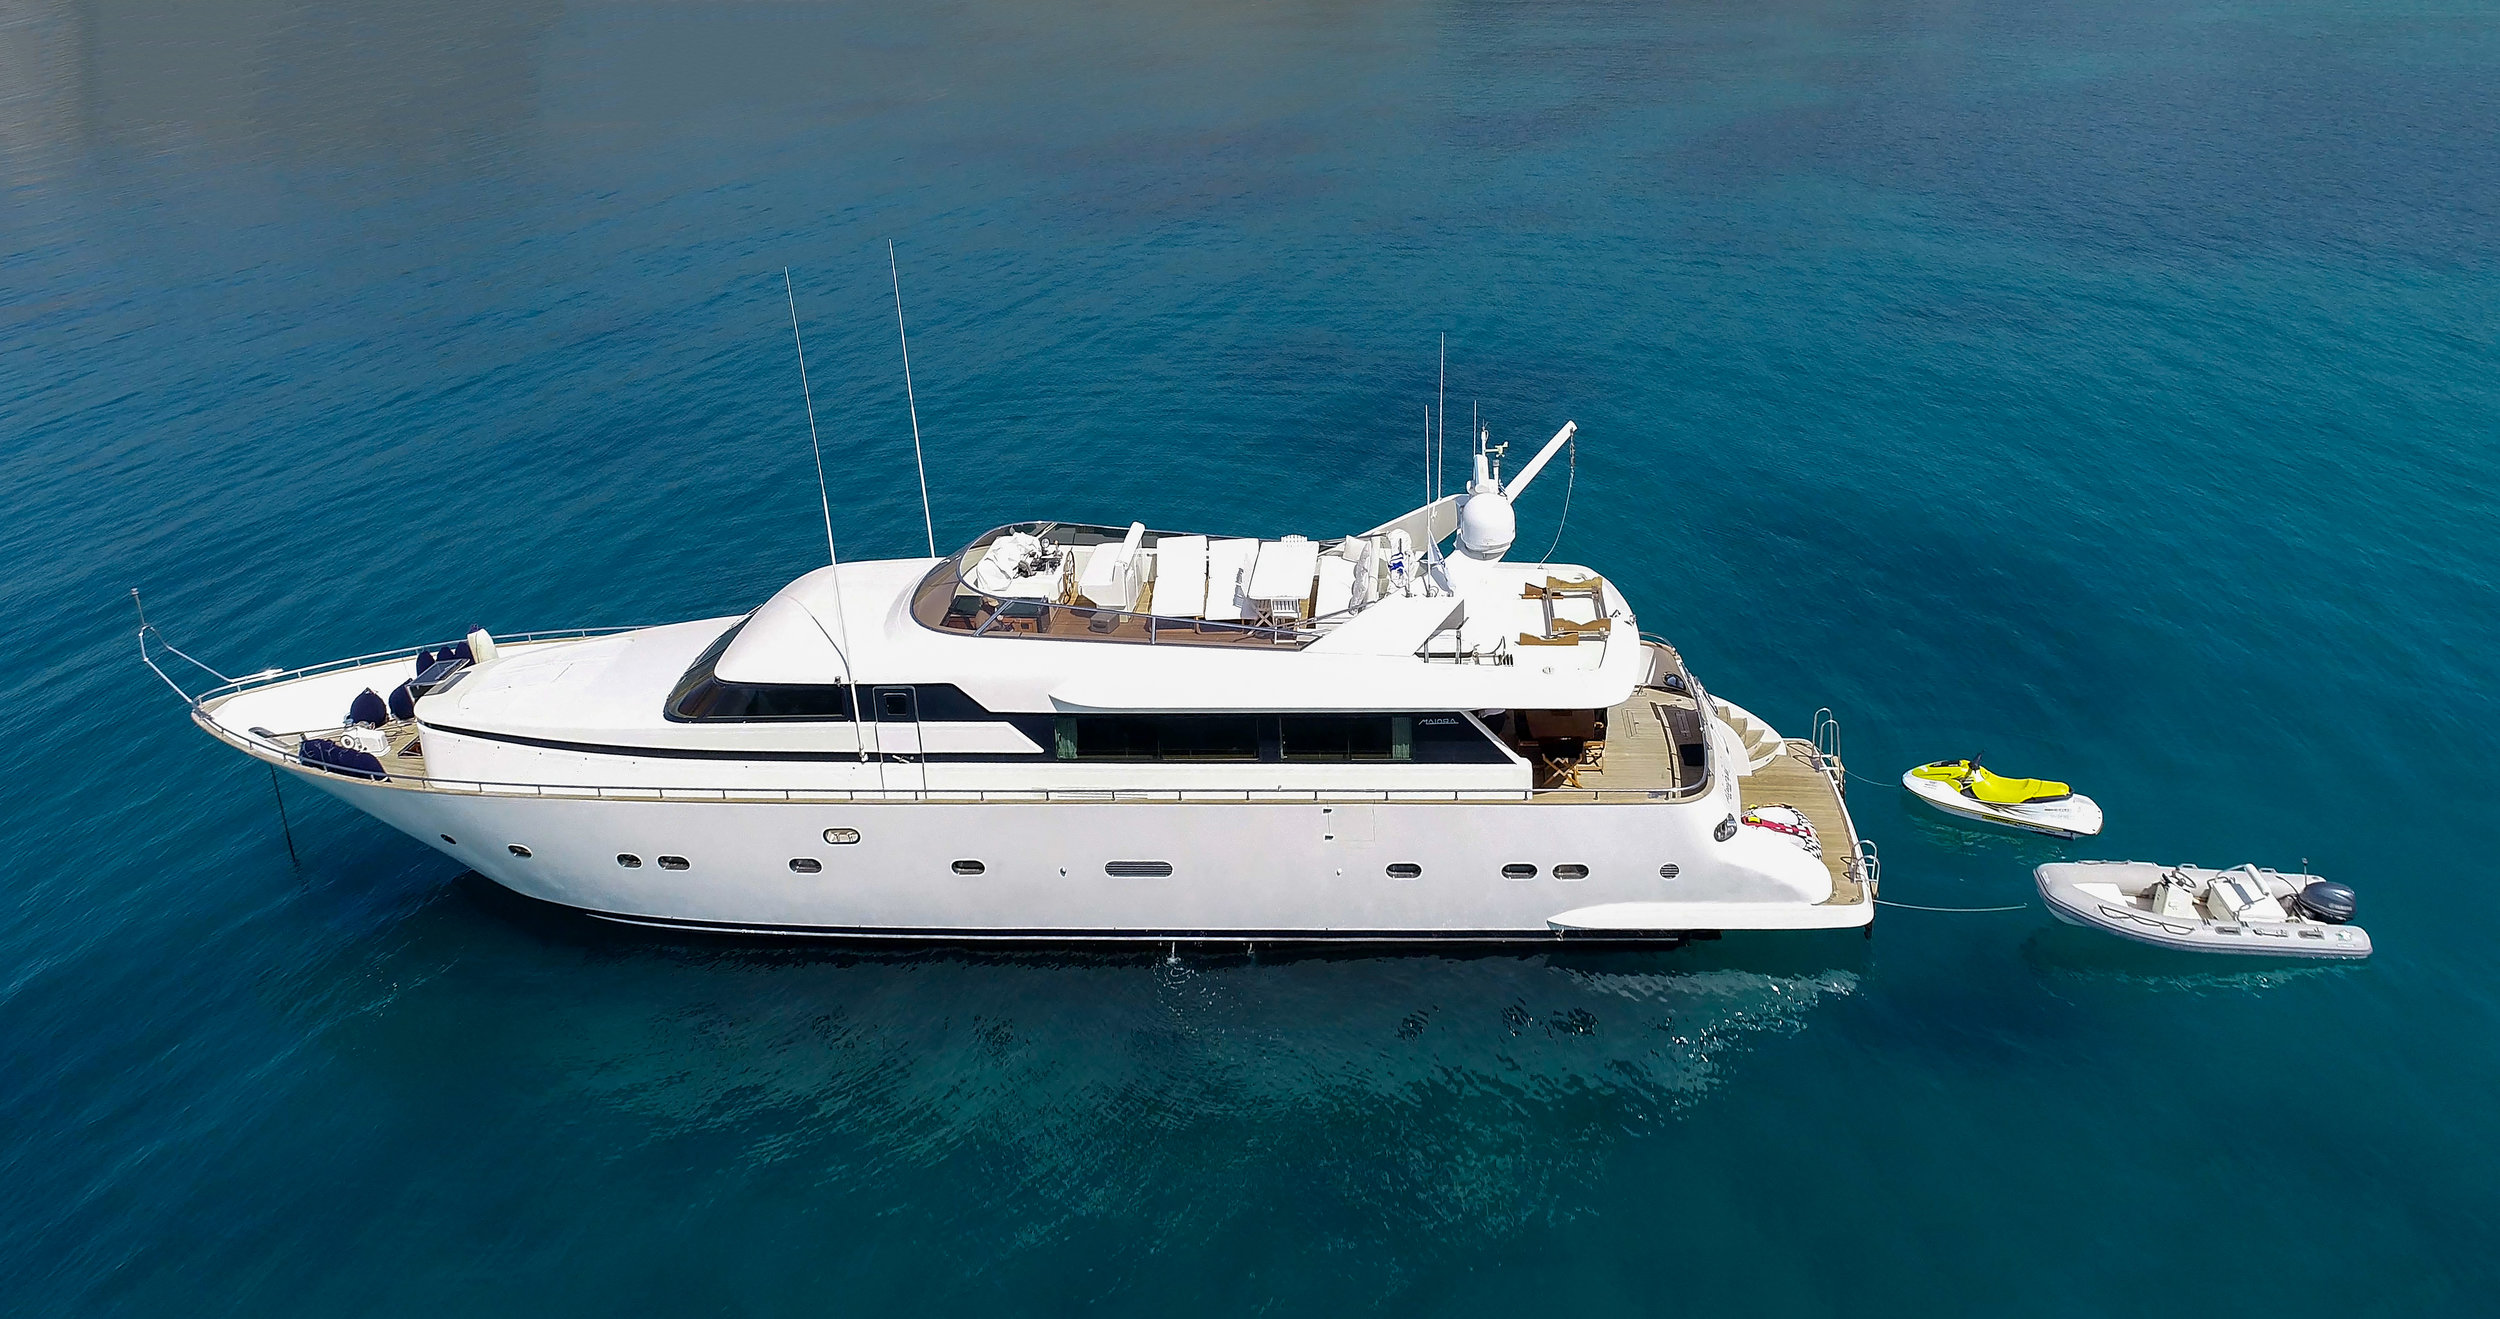 M/Y AlanDiNi - Discover beautiful AlanDiNi and cruise to the Greek Islands!